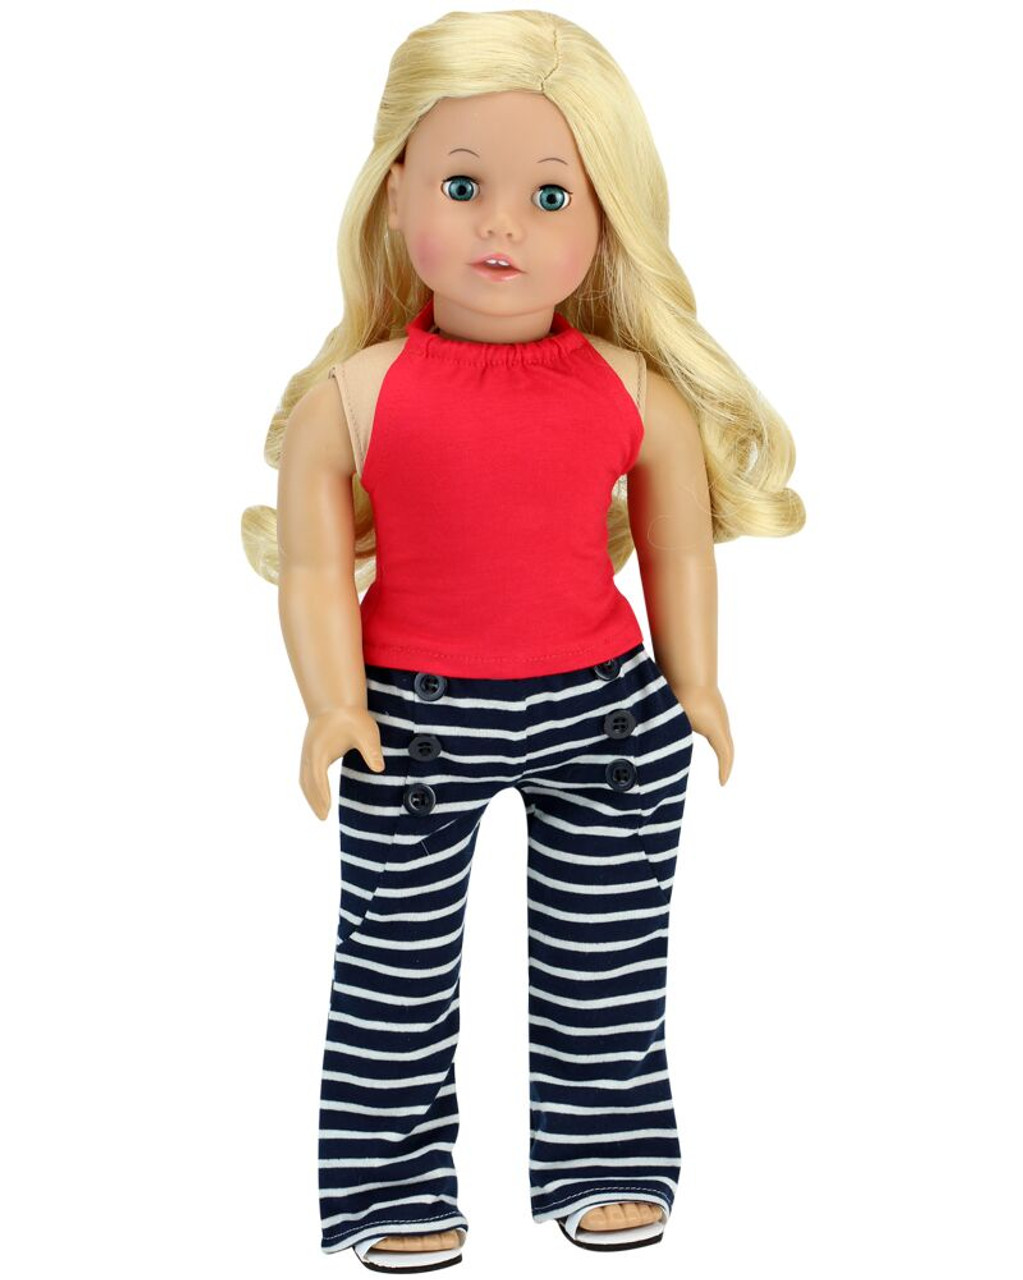 White Tank with Lace Trim  Fits 18 inch American Girl Doll